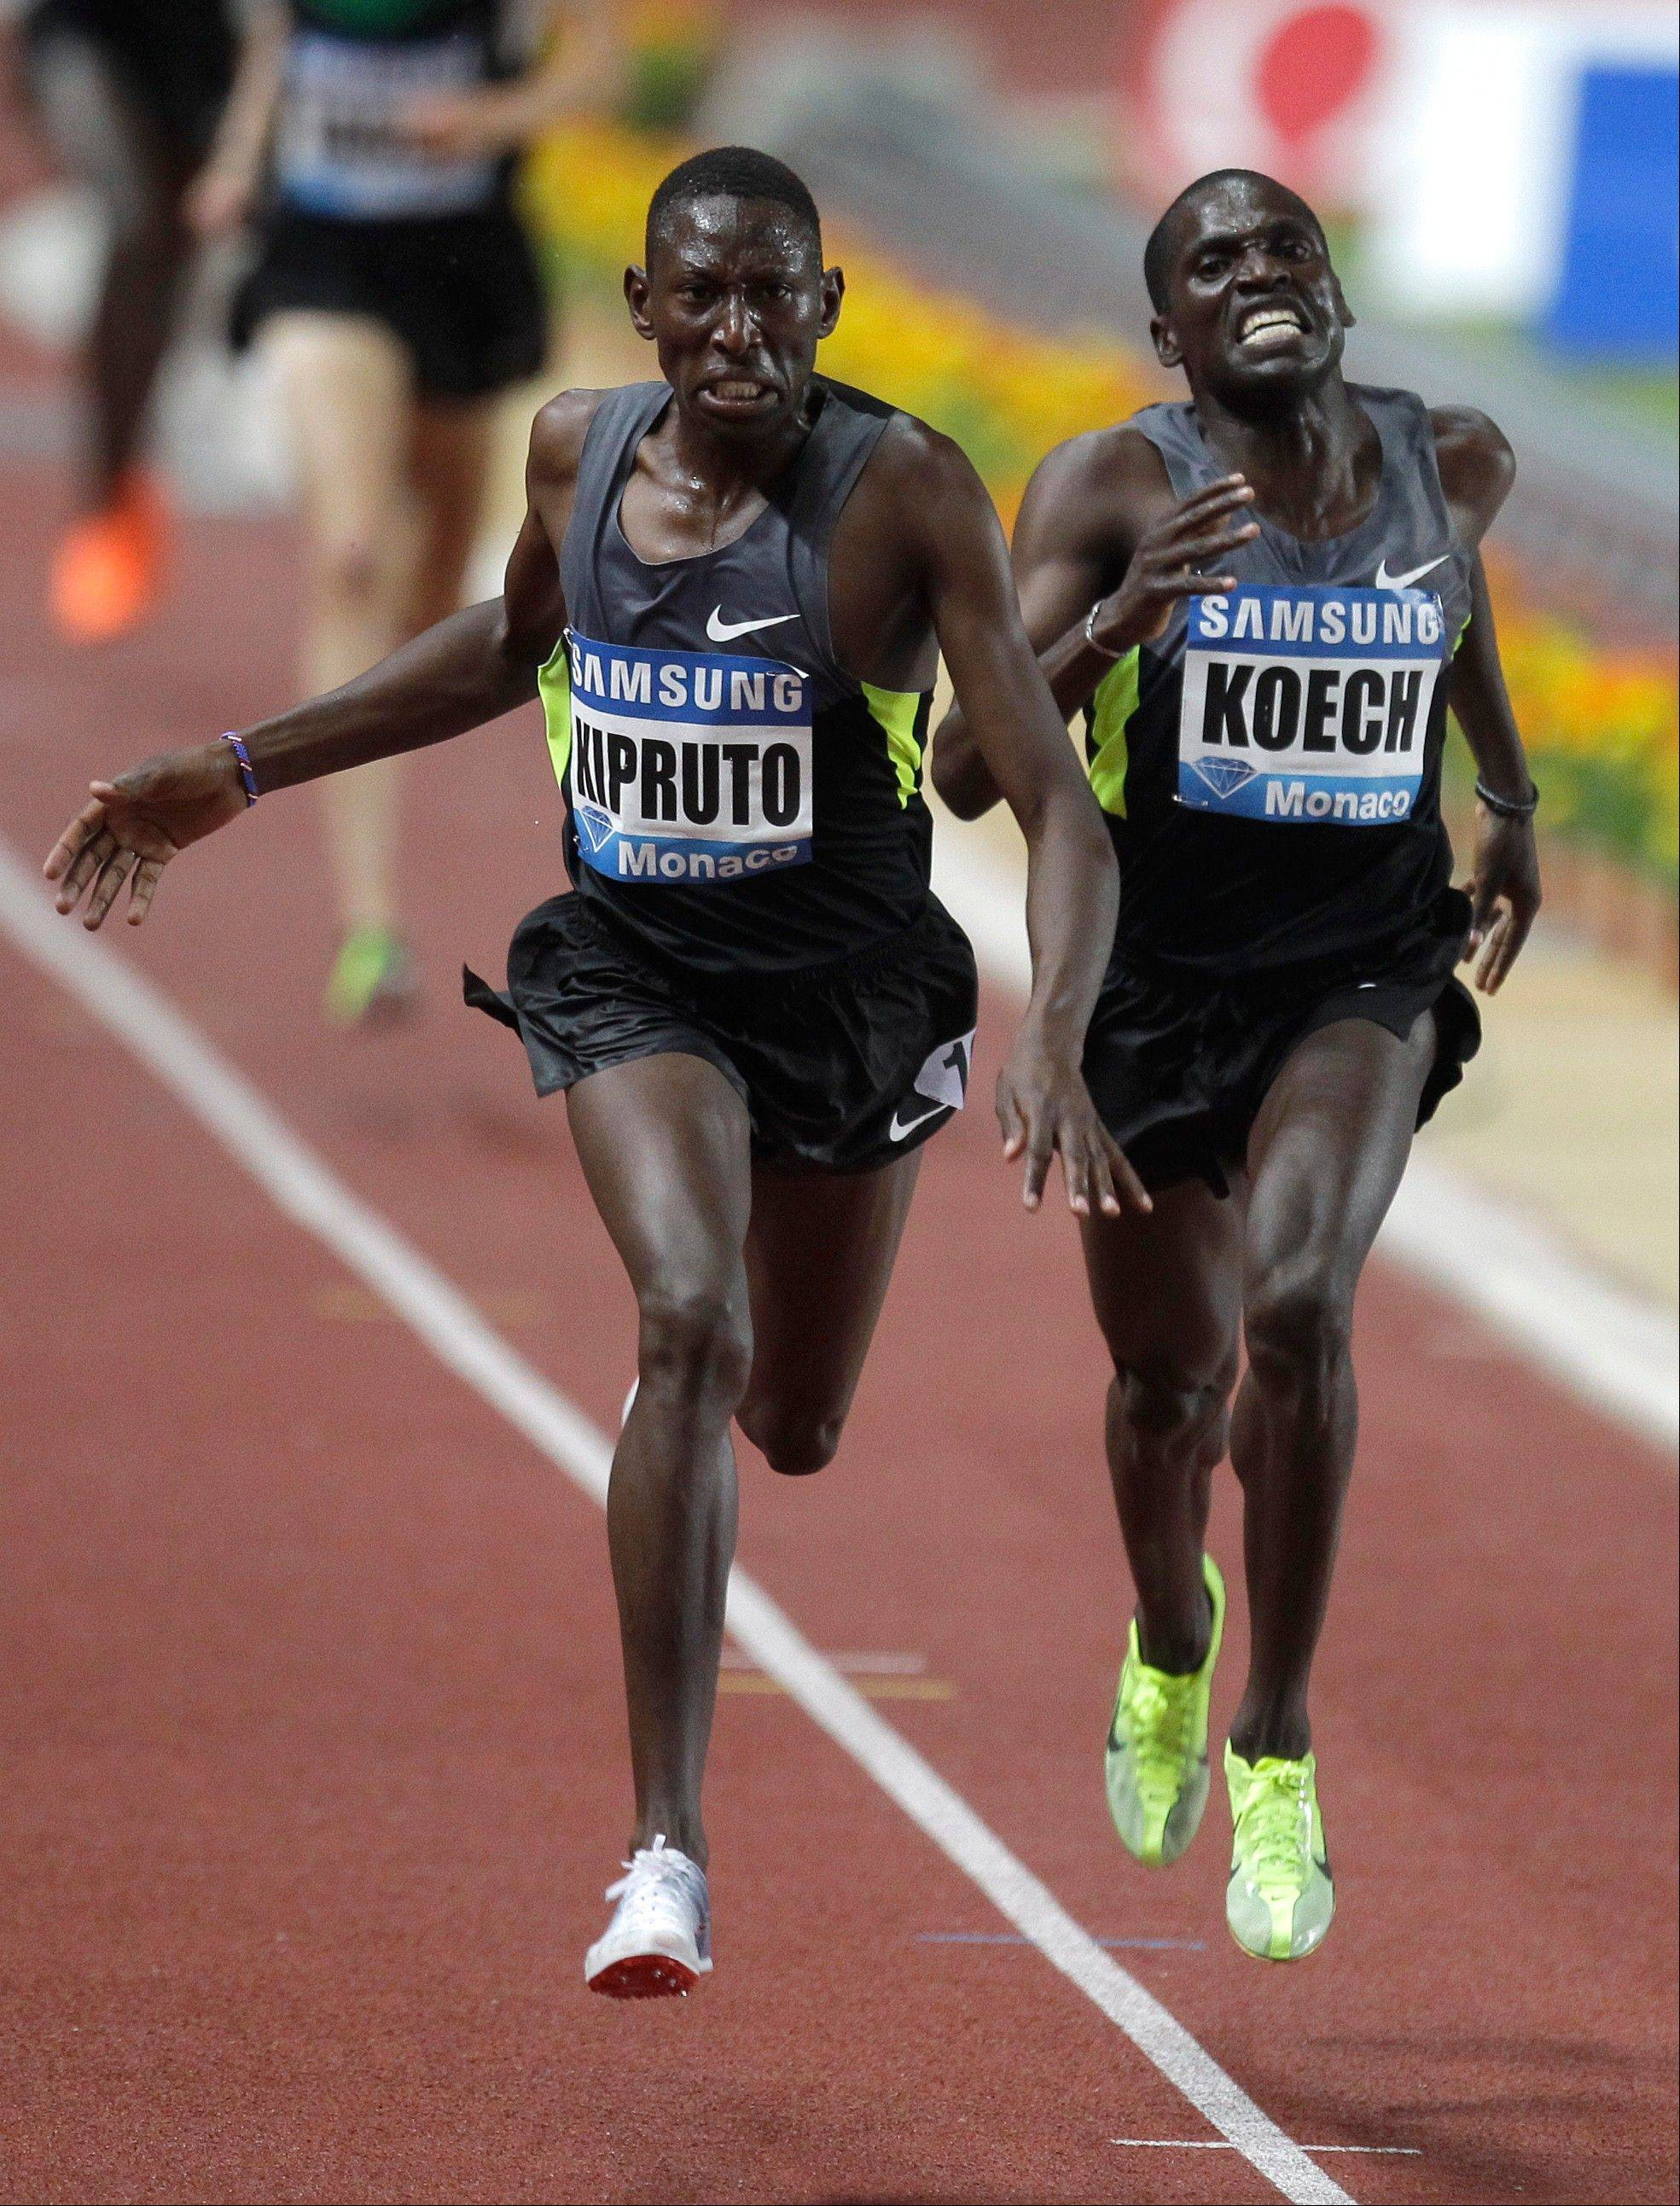 Conselus Kipruto of Kenya wins the 3,000m men's steeplechase in front of Paul Kipsiele Koech of Kenya at the Herculis international athletics meeting Friday at the Louis II Stadium in Monaco. American Evan Jager of Algonquin finished third in that race, breaking the U.S. record and setting the fastest time by an American this year.